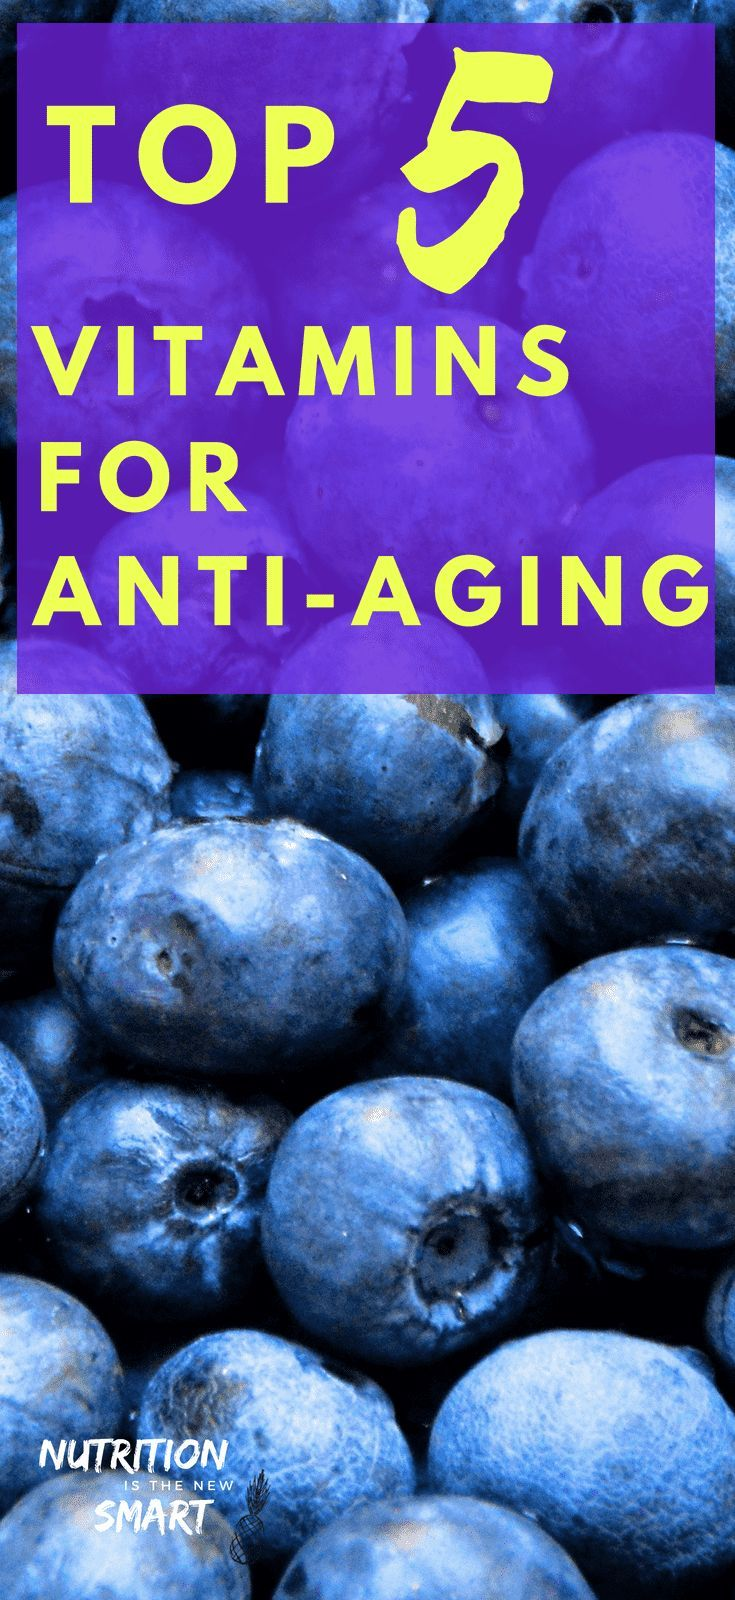 Prevent aging and stay young! – Proven methods for anti aging